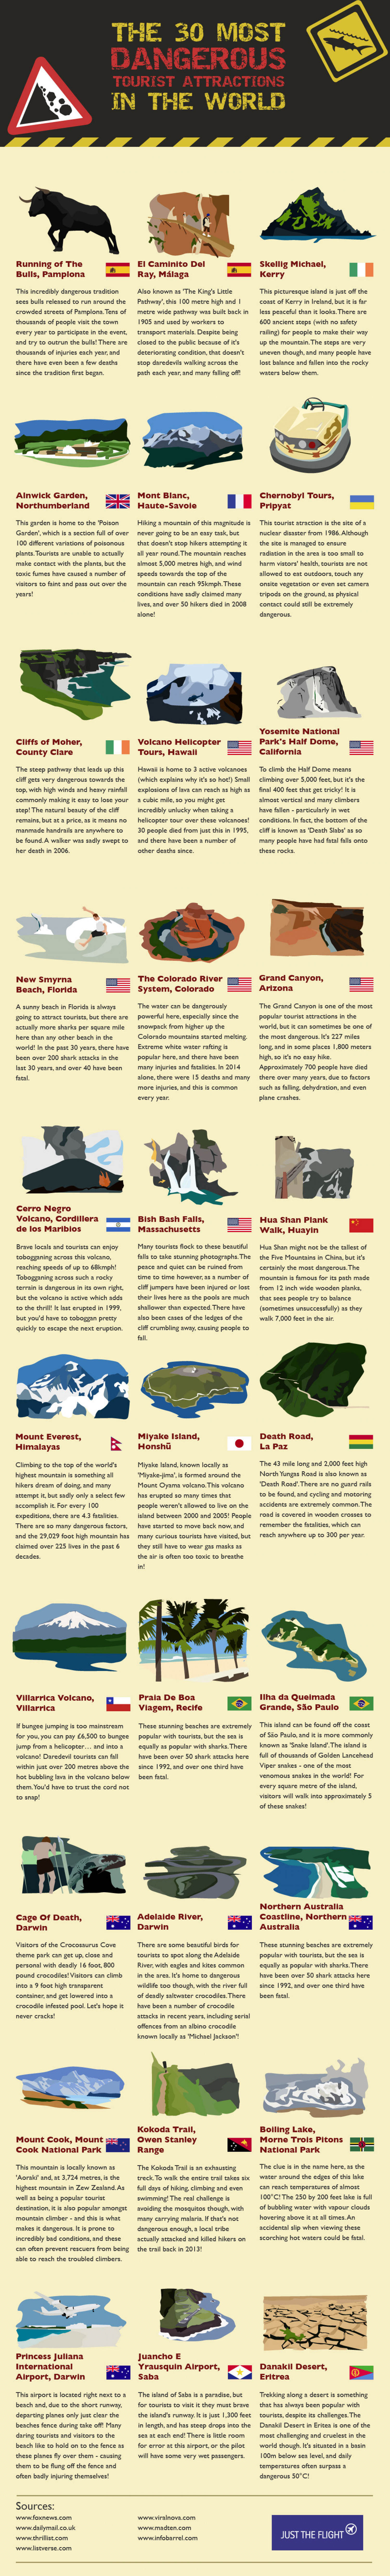 The 30 Most Dangerous Tourist Attractions In The World Infographic